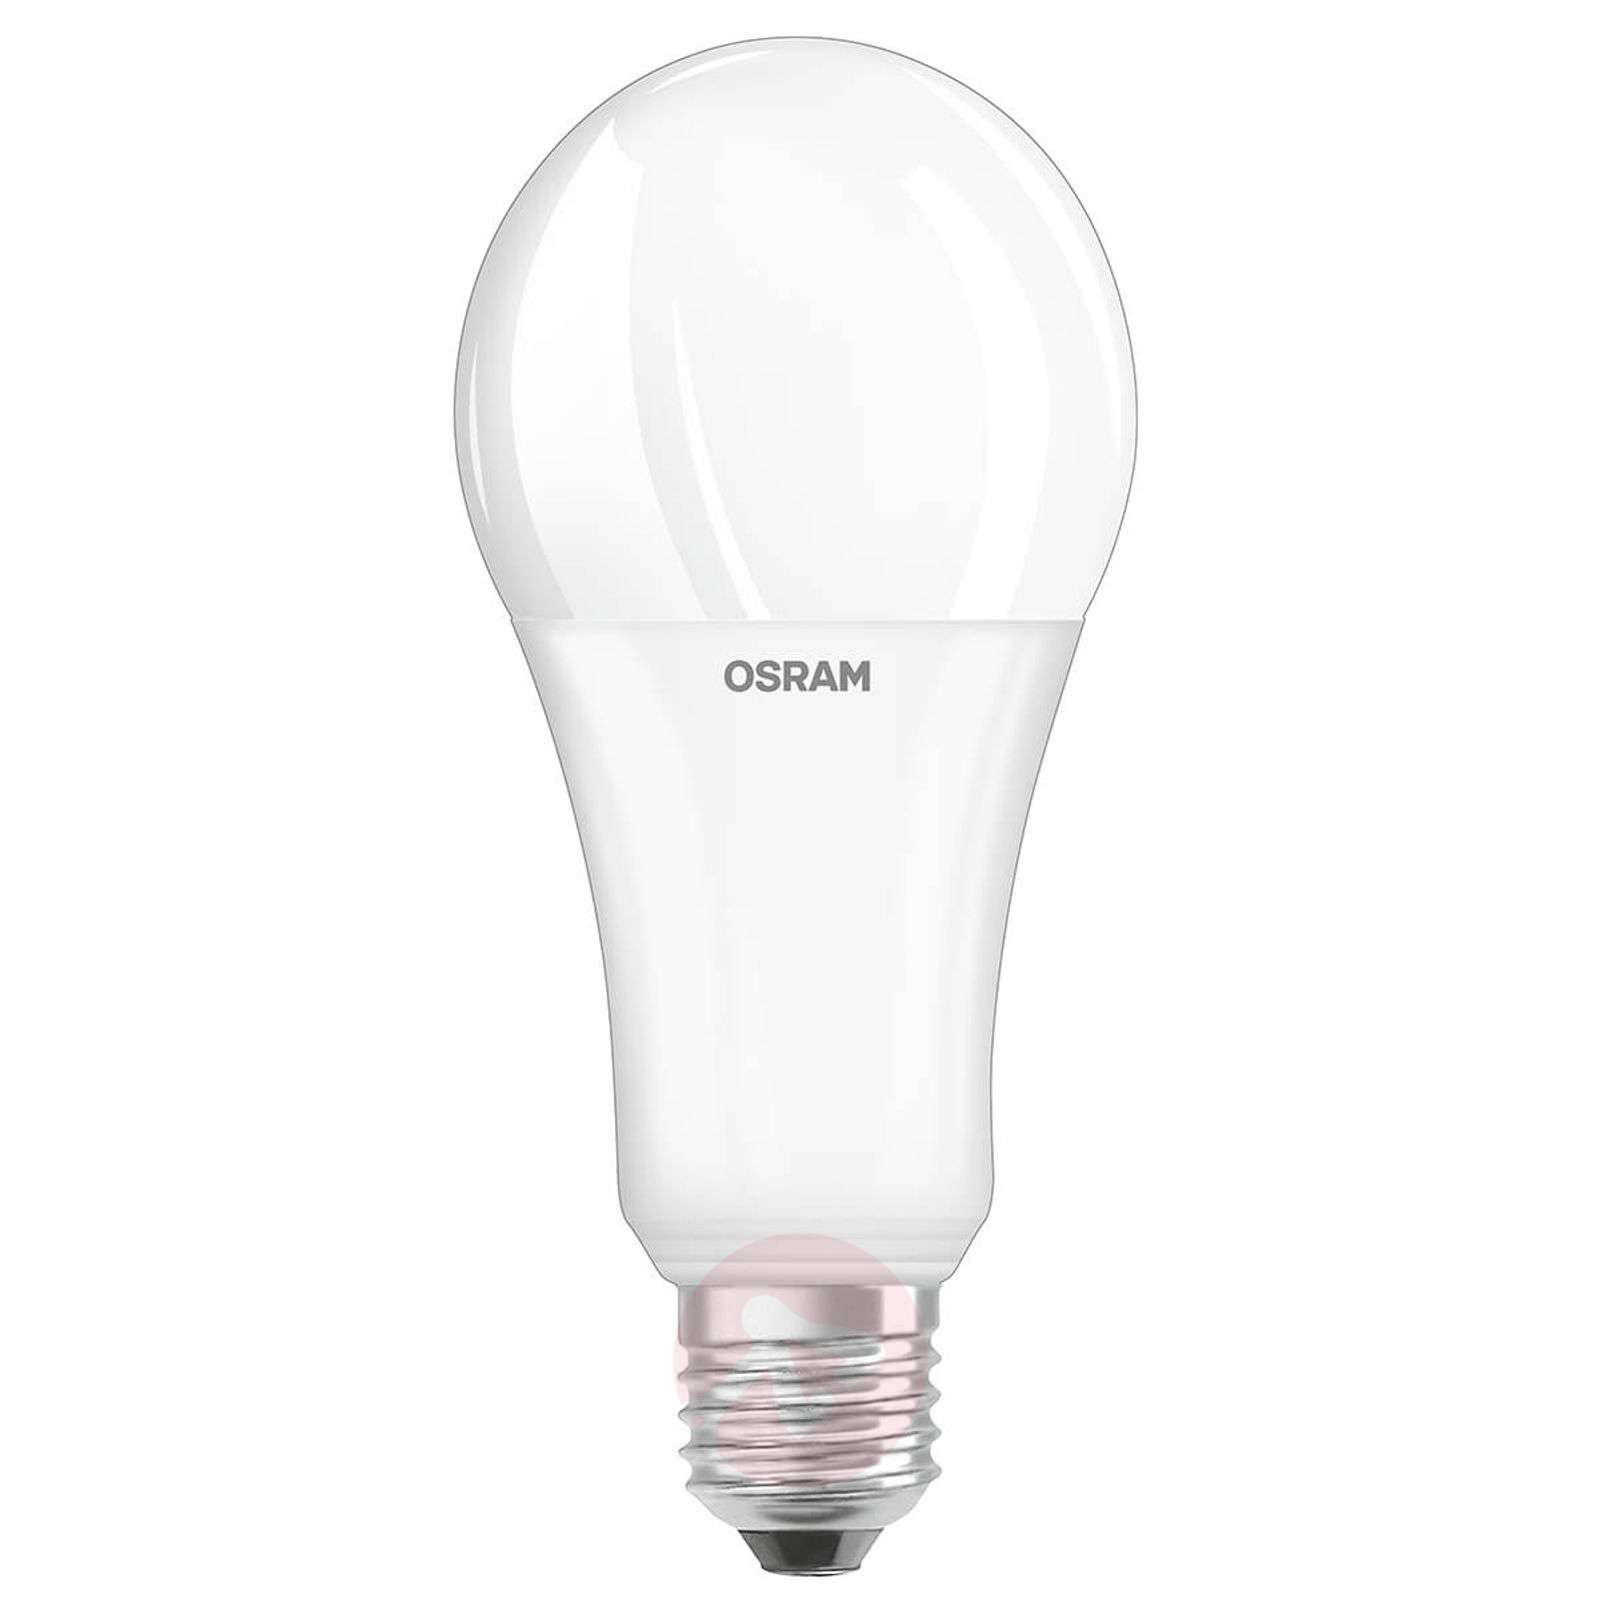 Ampoule LED E27 21W, blanc chaud, 2 500lm,dimmable-7262046-01